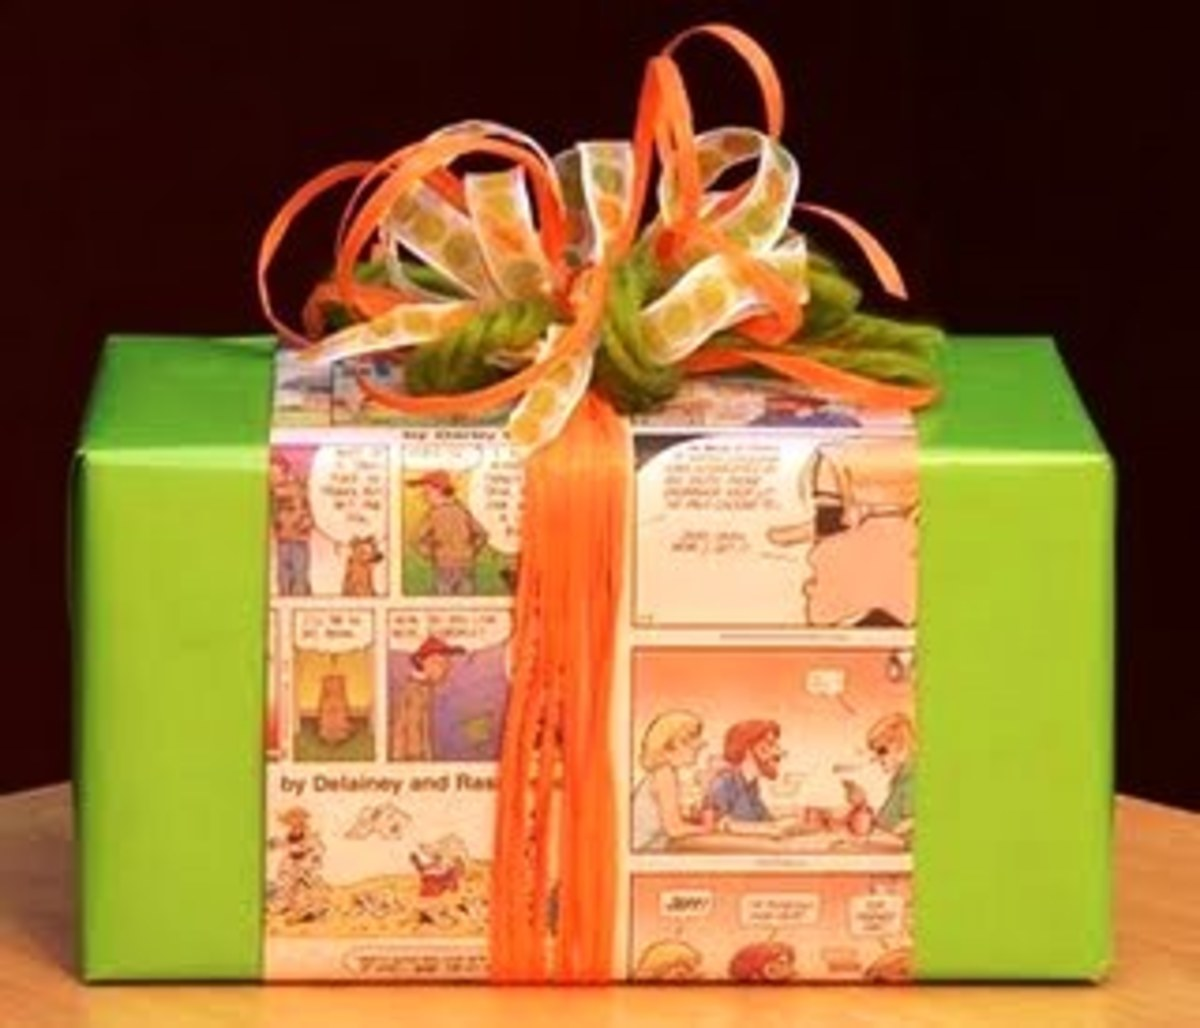 For quick creative ideas for gift wrapping, you could quickly wrap a piece of the recipient's favorite comic book around the present. This is great for nearly any comic book character enthusiast!